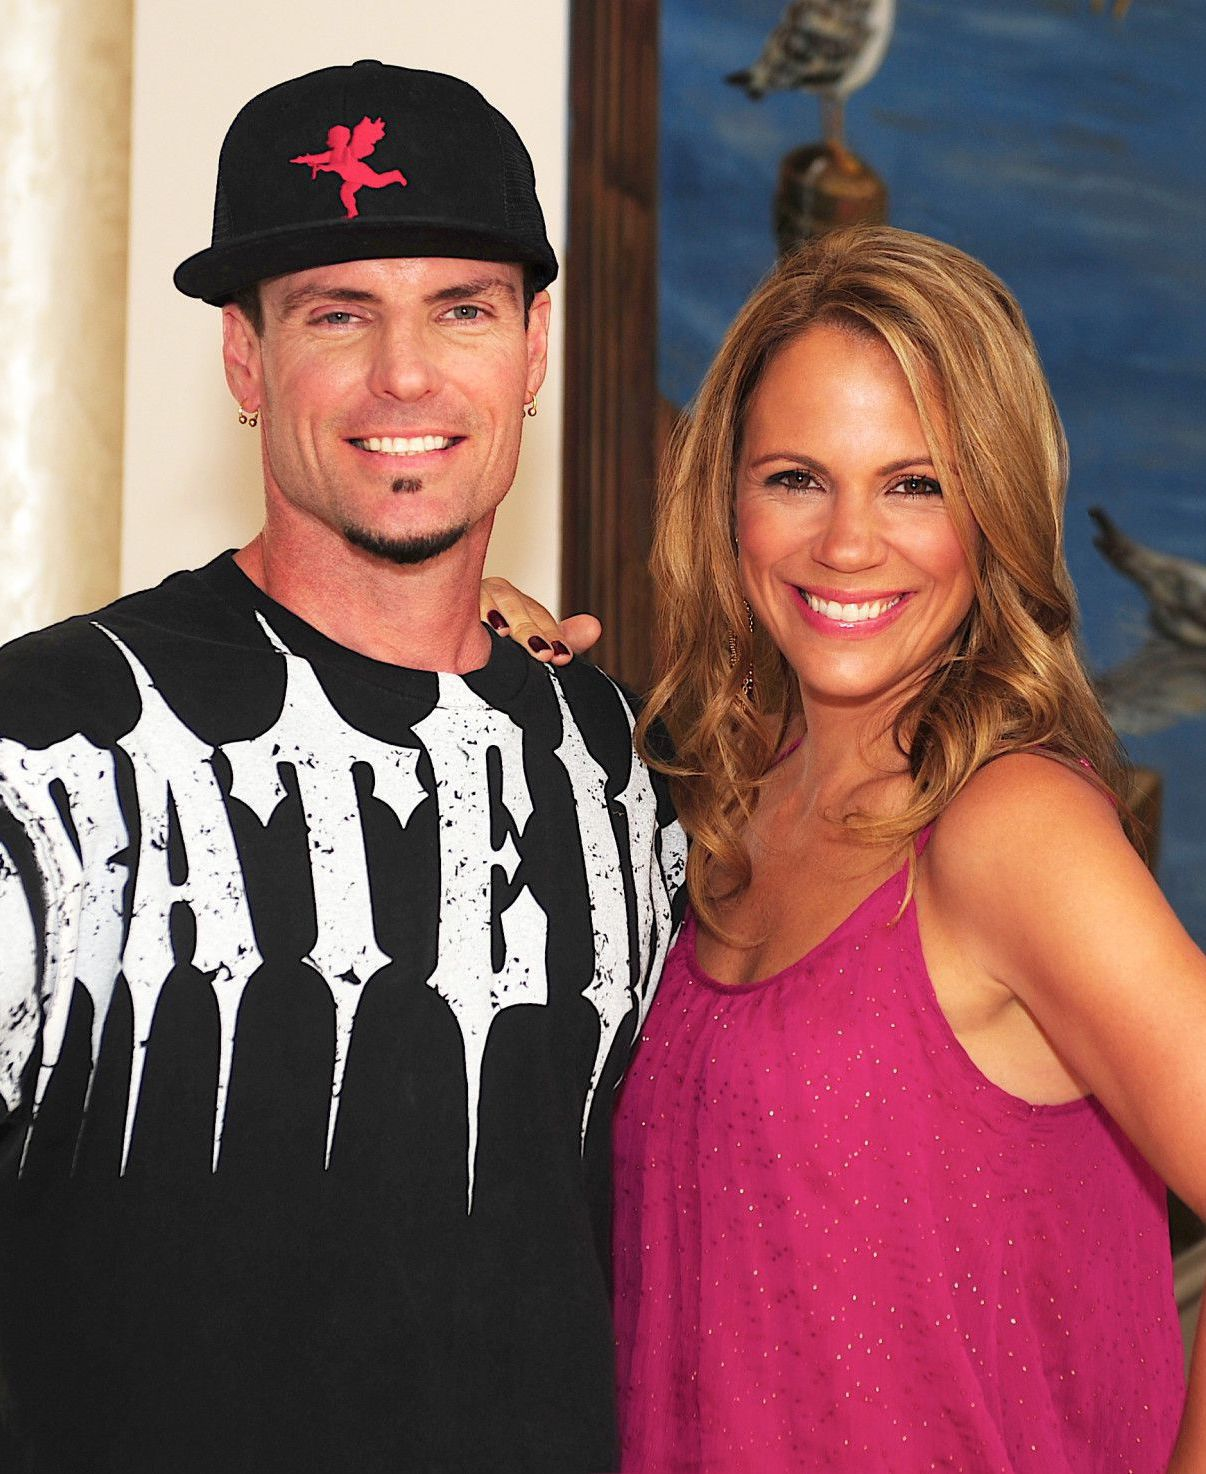 Vanilla Ice HD Desktop 20 Celebrities You Didn't Know Had Committed Crimes